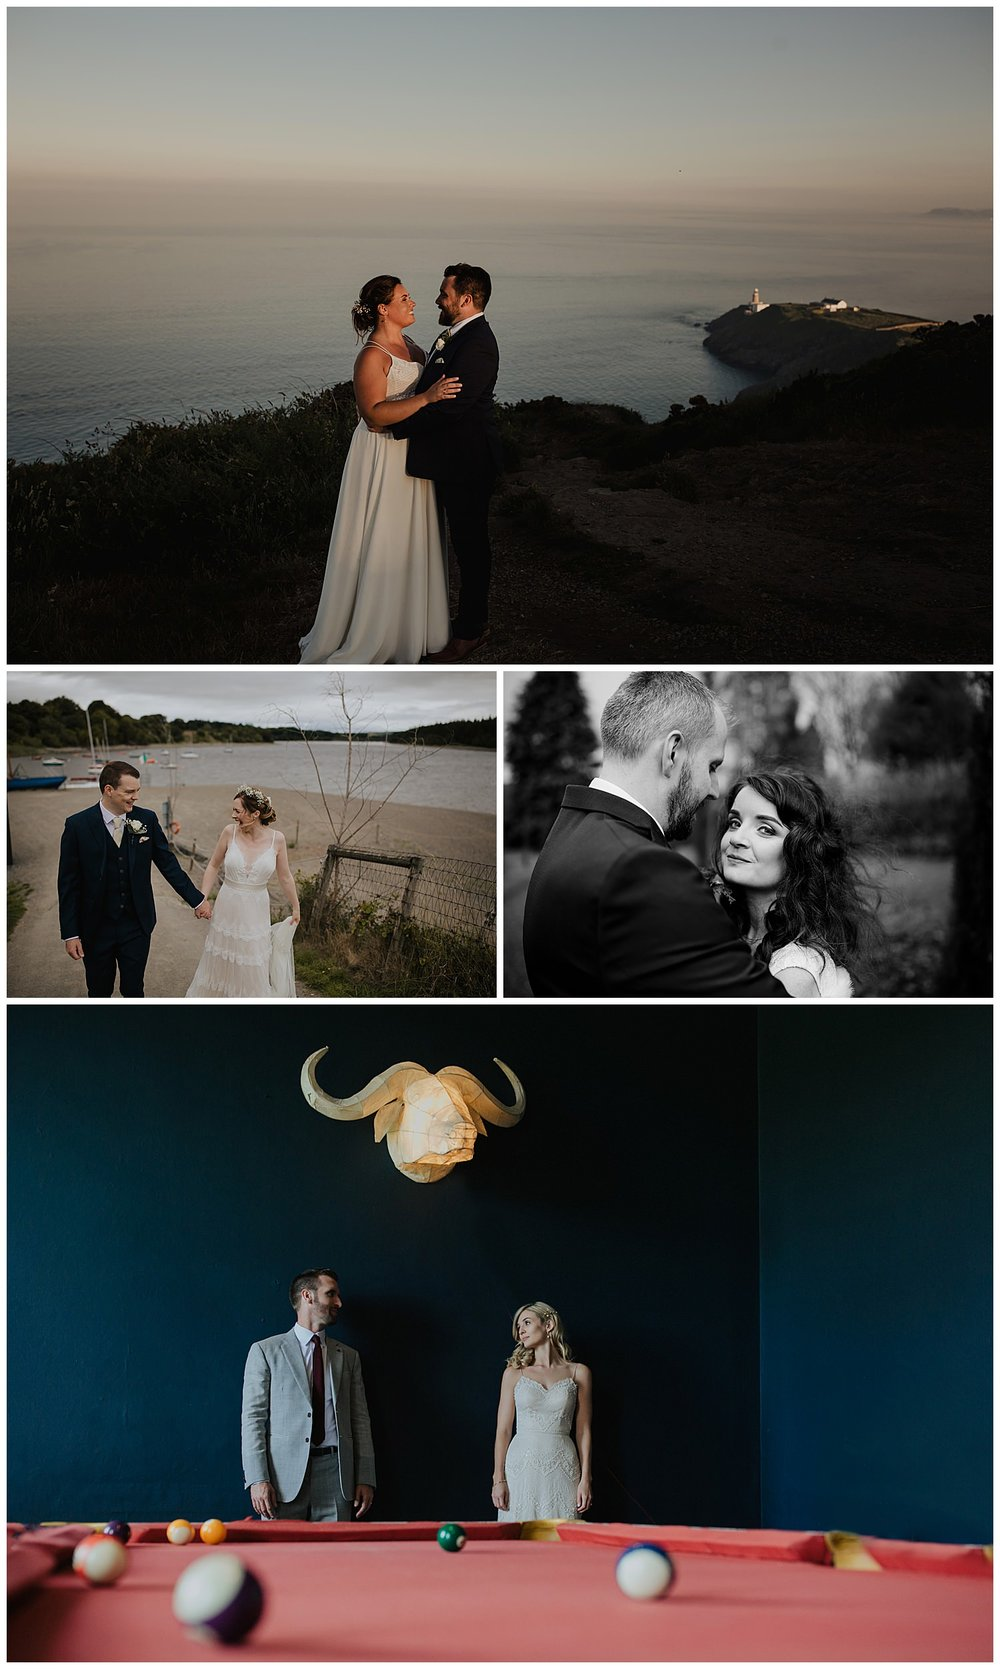 c&c_abbey_tavern_howth_elopement_dublin_ireland_wedding_photographer_livia_figueiredo_744.jpg